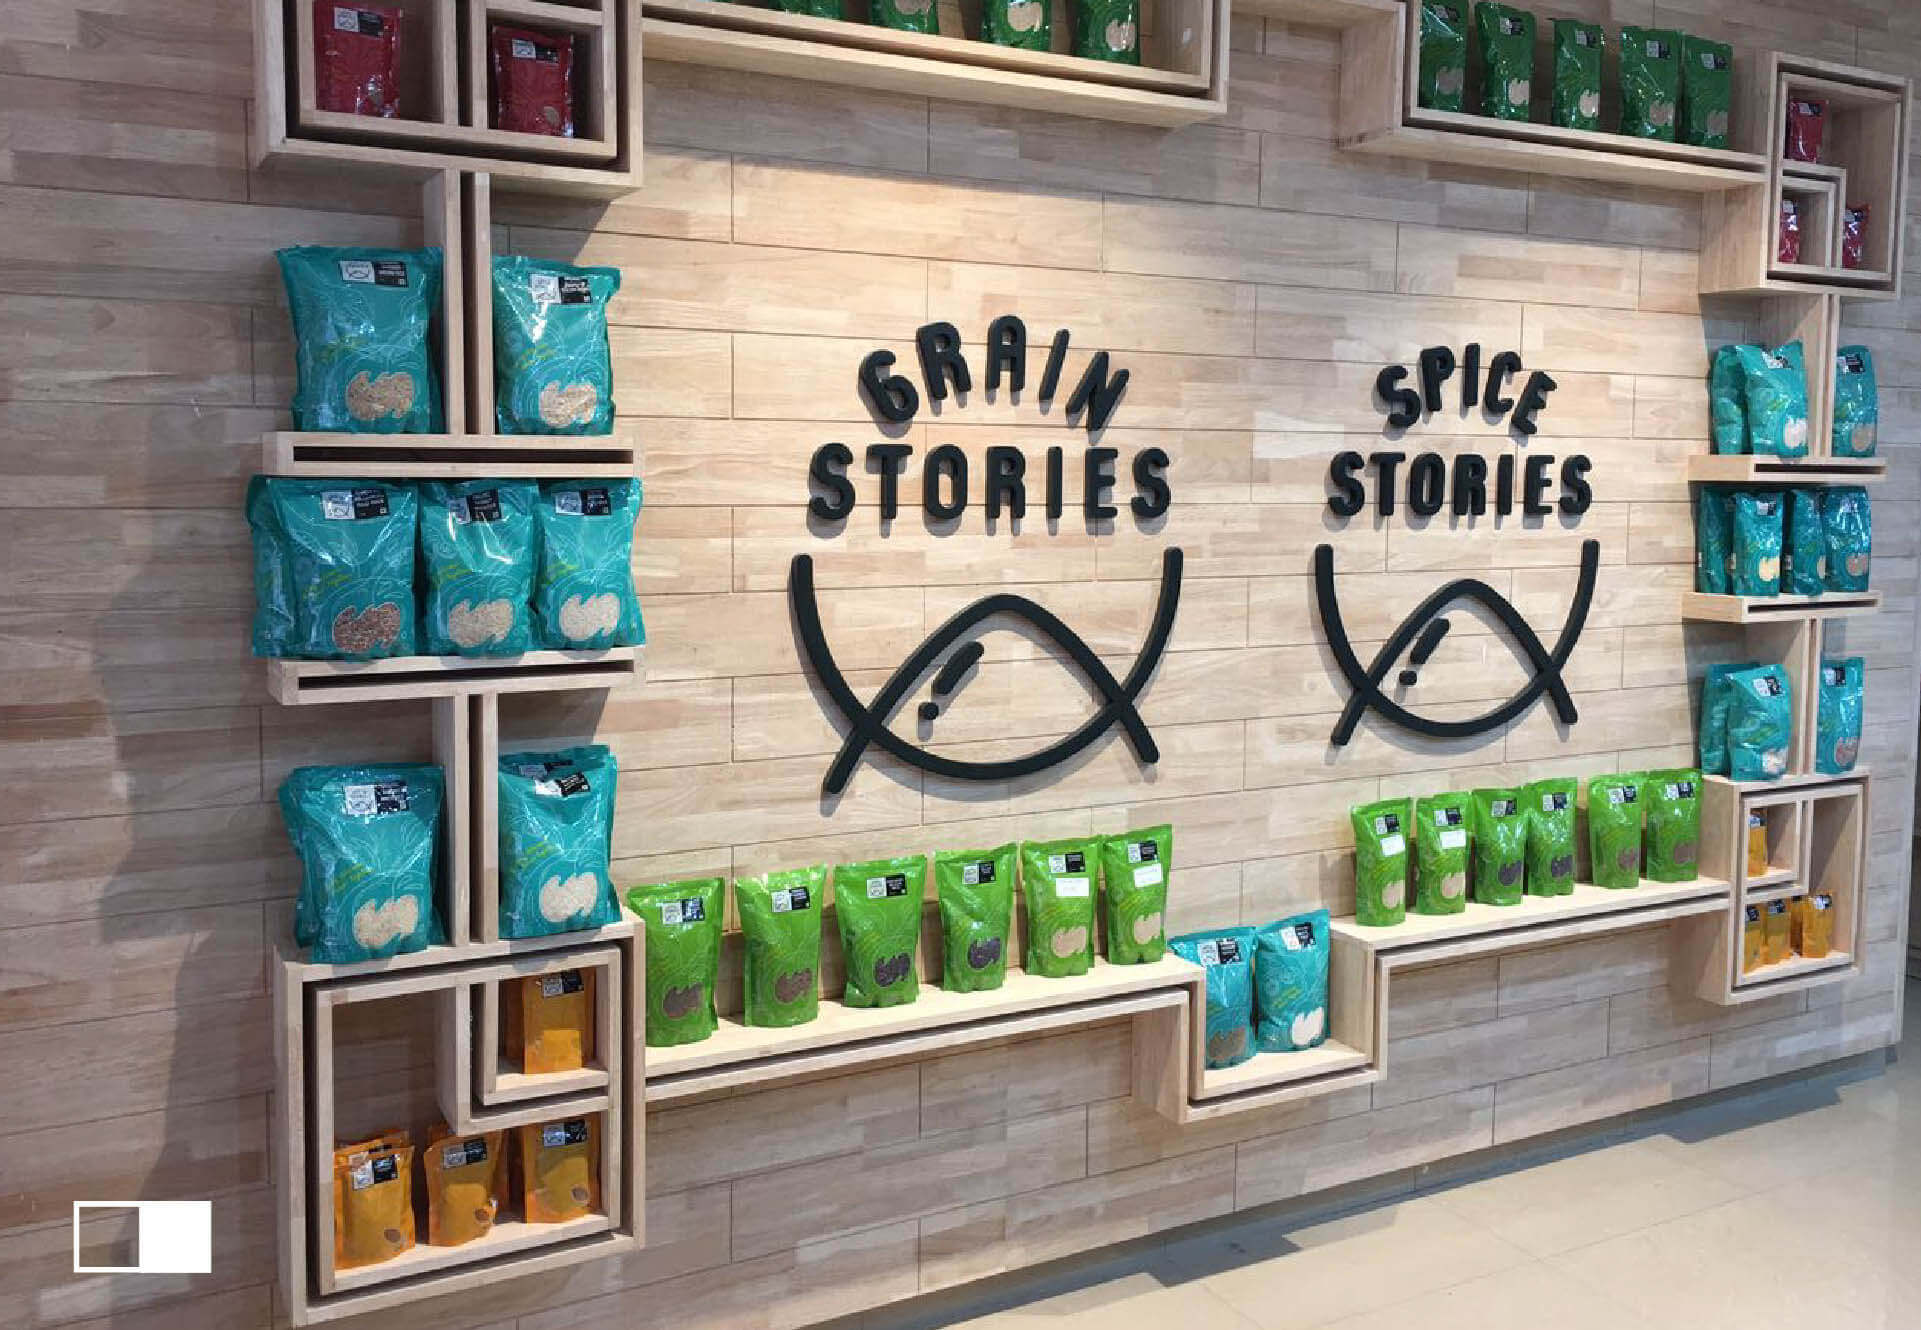 Grain Stories-A new entrant in the Organic Food Industry in India